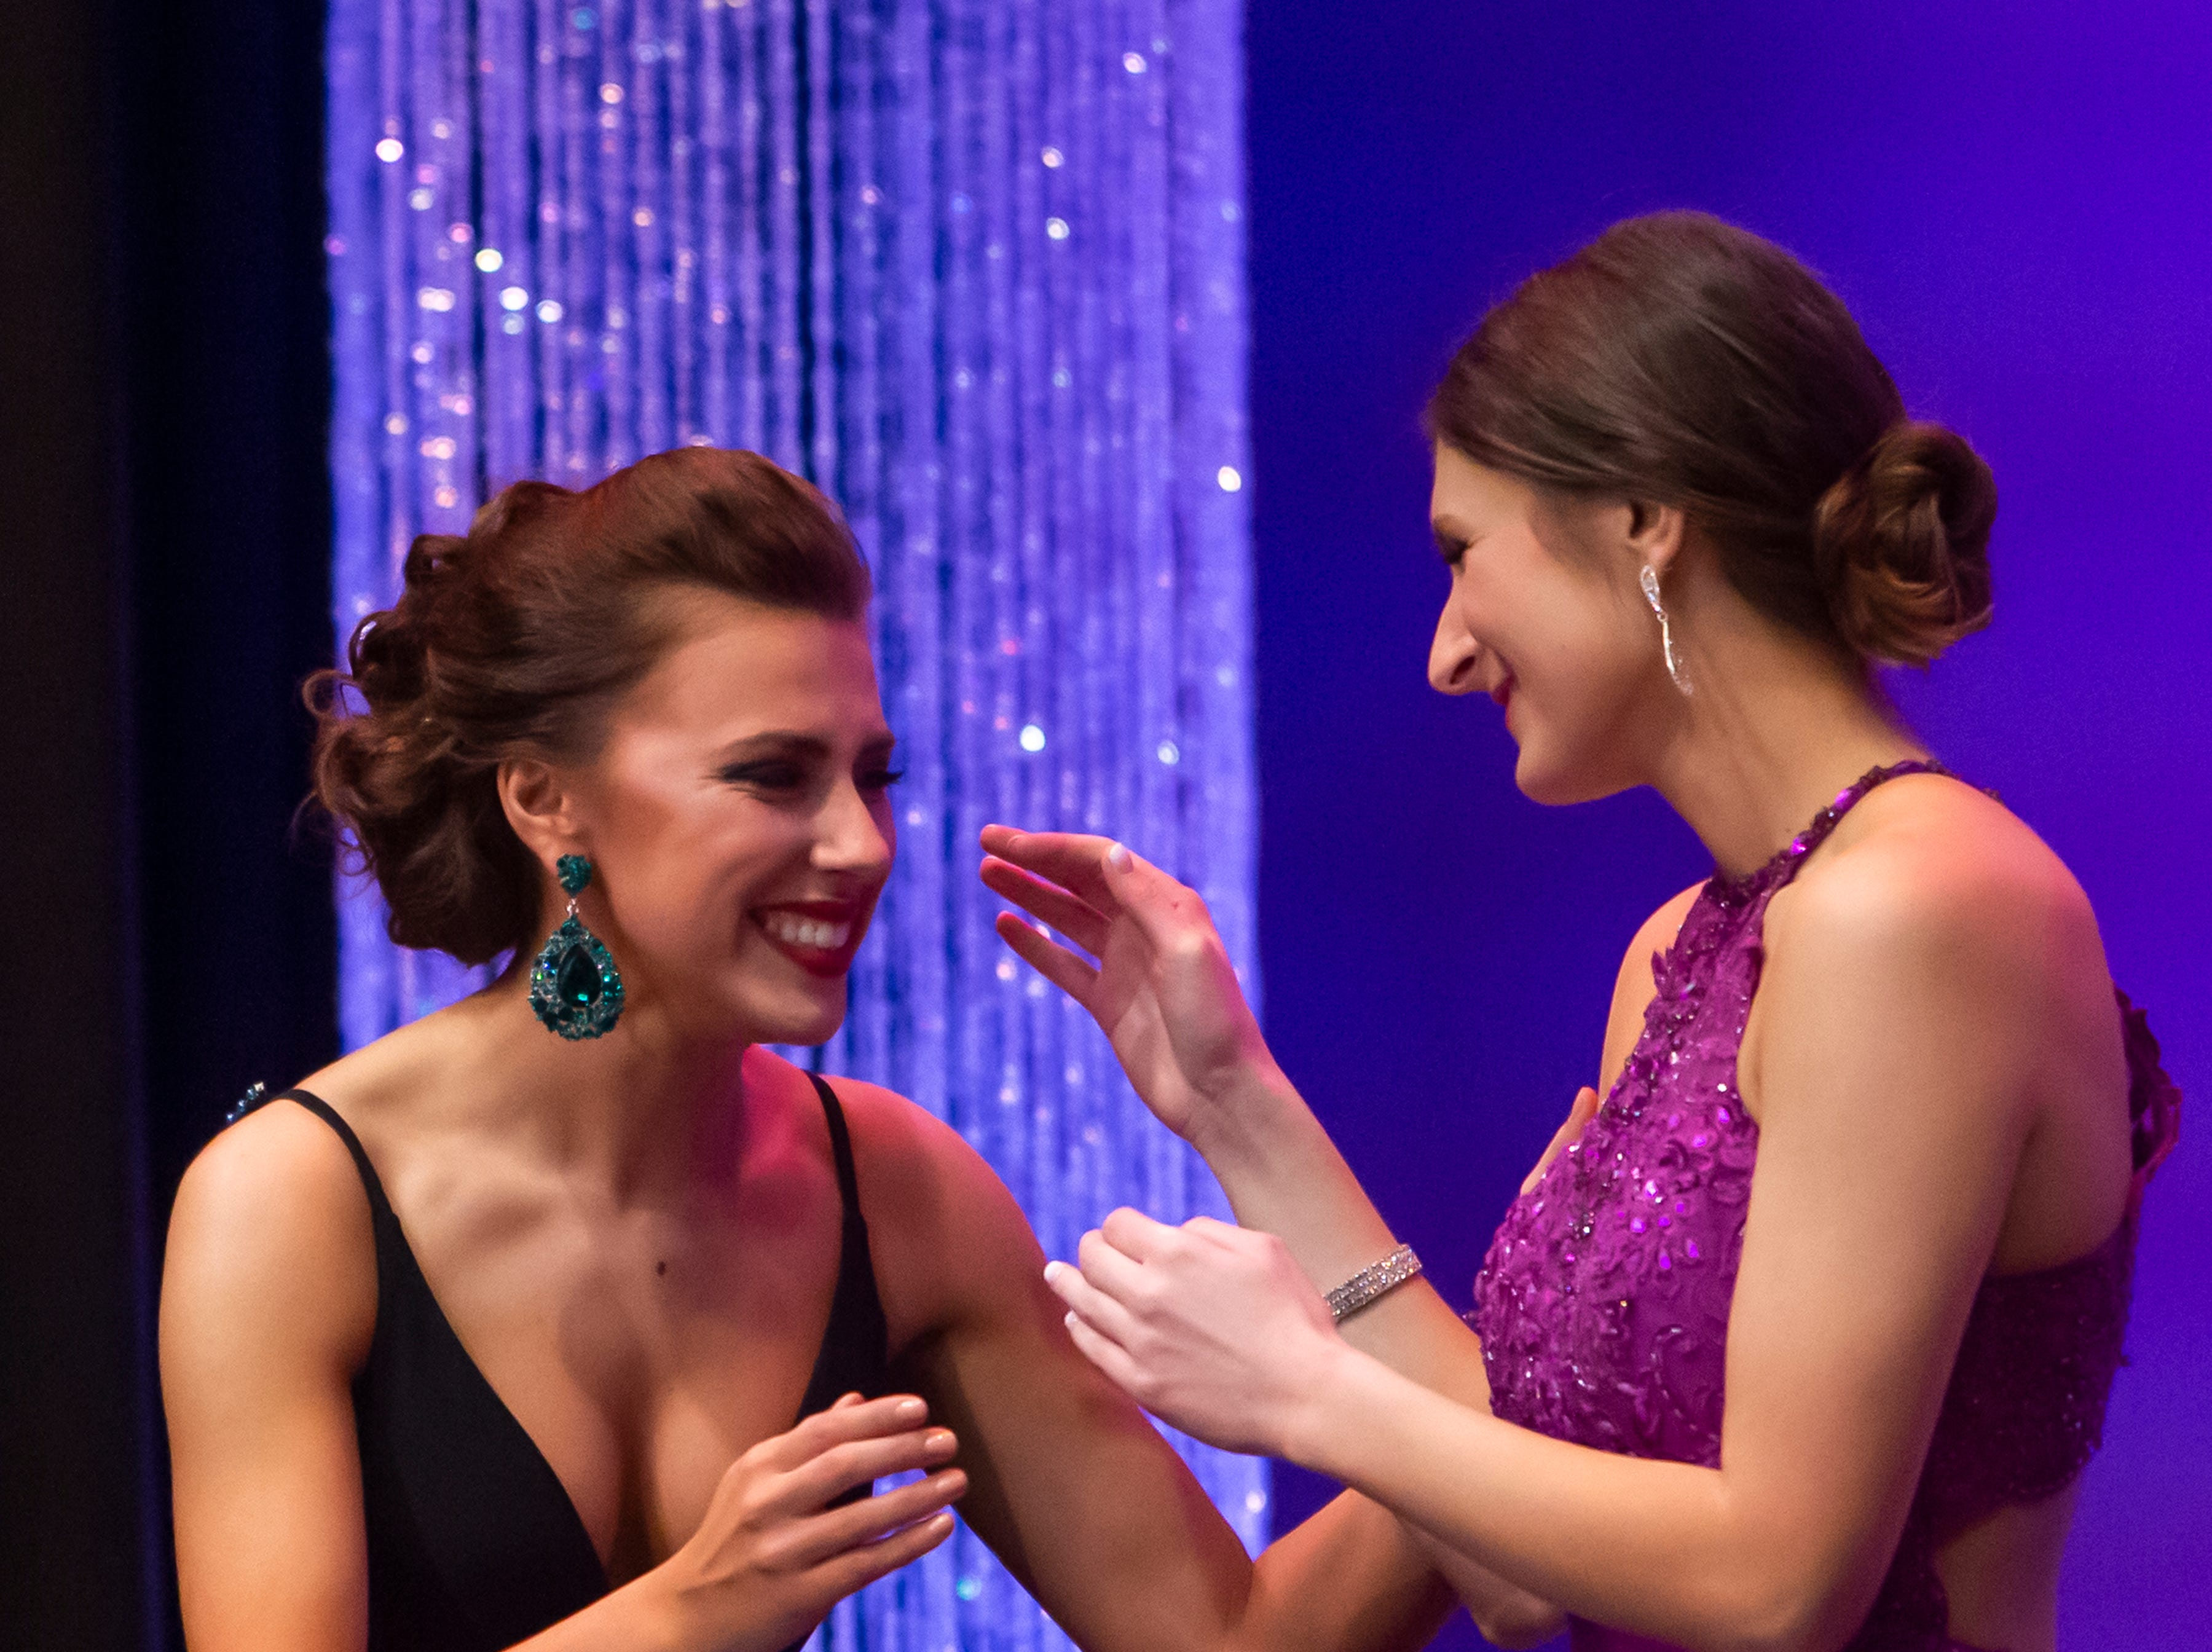 Anna Chapin reaches to Katrina Mazier congratulating Mazier on her Miss Oshkosh title win during the Miss Oshkosh Scholarship Pageant Saturday, March 2, 2019, at Alberta Kimball Auditorium in Oshkosh, Wis.